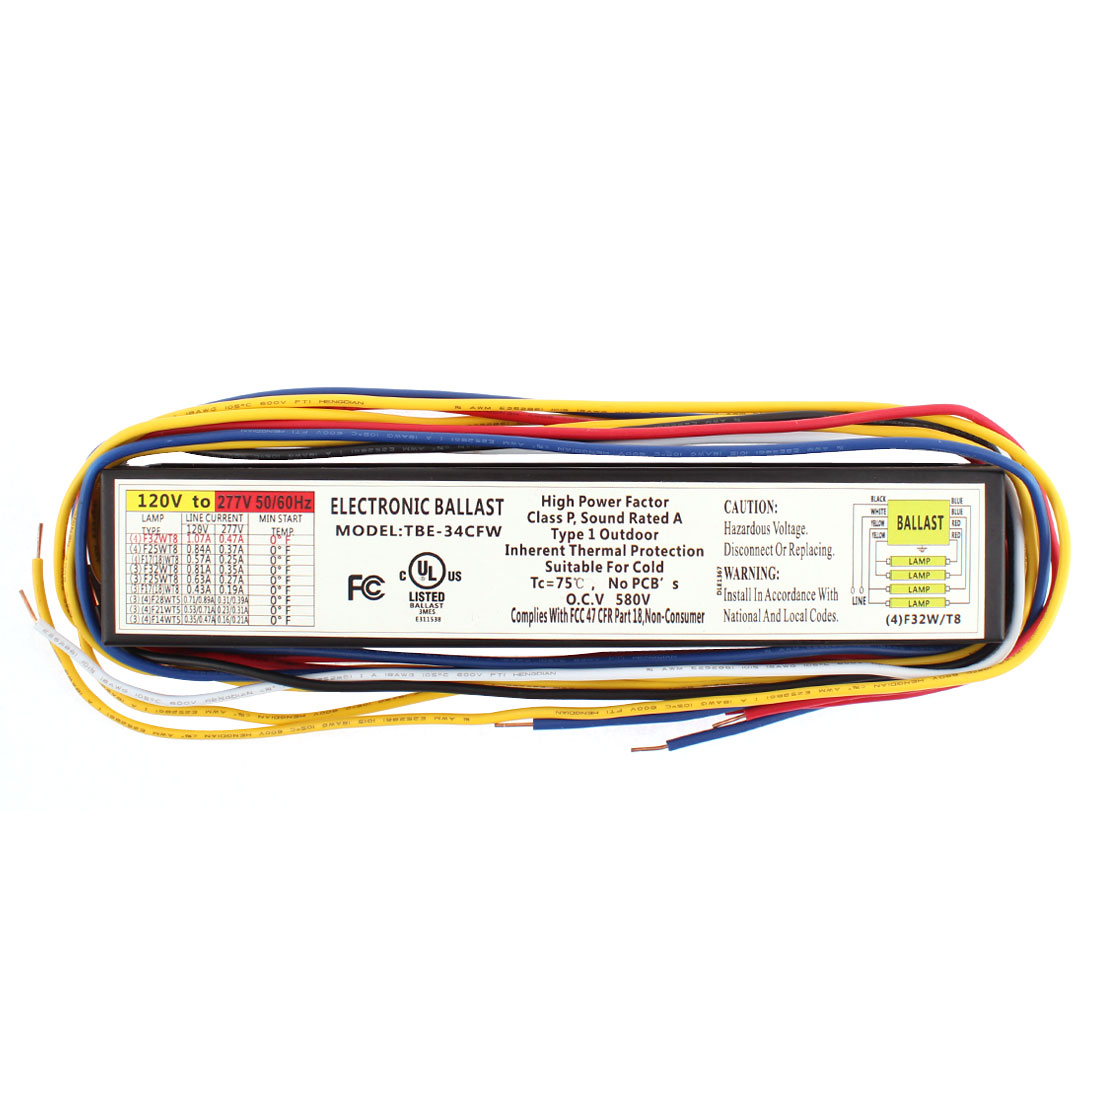 UL Listed AC120V-277V F32T8 32W T8 Lamp Electronic Ballast for 3 or 4 T8 Fluorescent Light